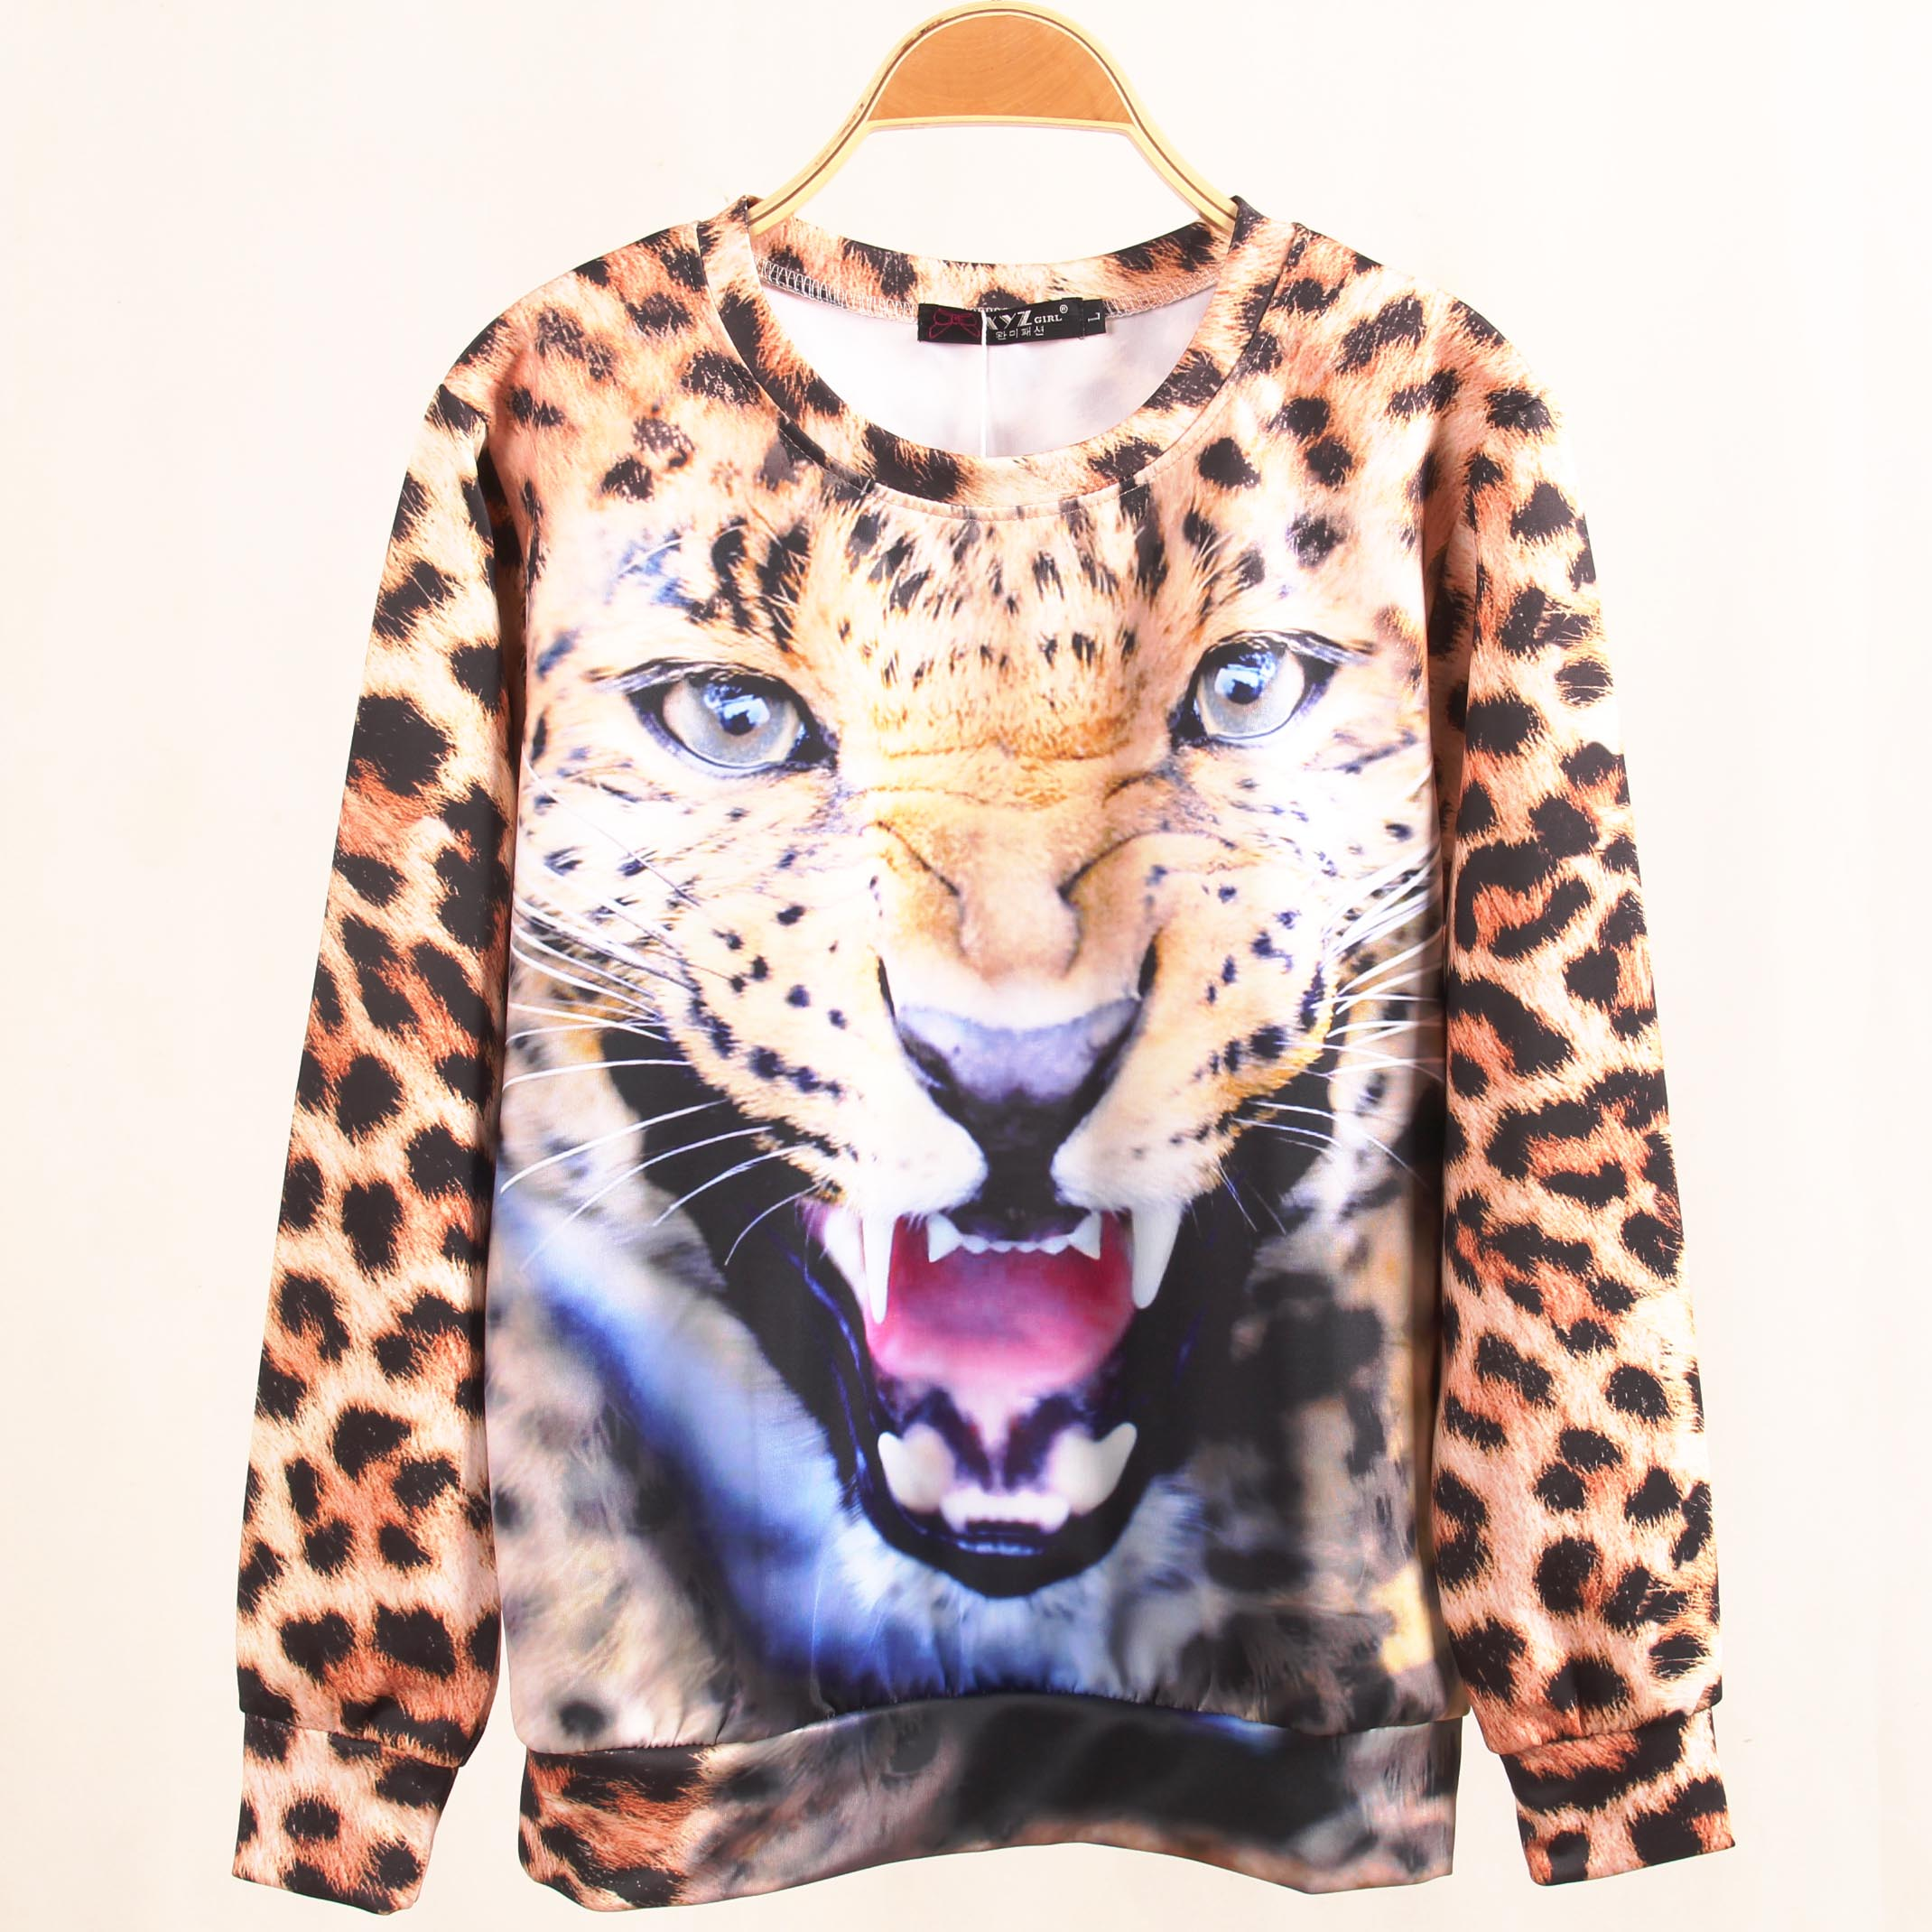 ff752c99b045 Hot selling 2014 new arrival fashion 3d lion leopard print hoodies women's  pullover o neck sweatshirt plus size free shipping-in Hoodies & Sweatshirts  from ...